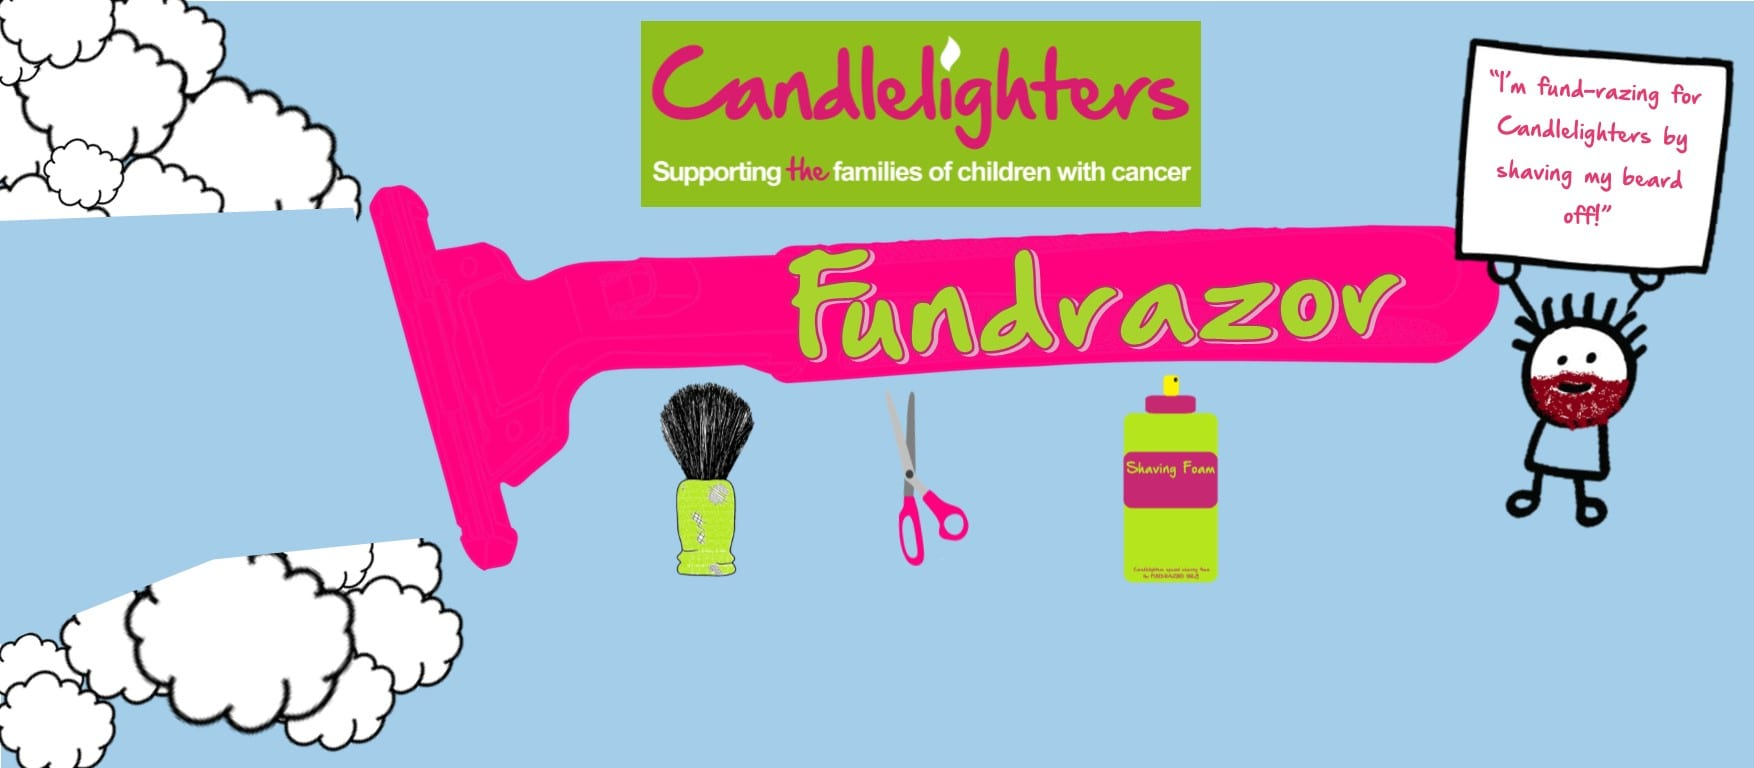 The Candlelighters Fundrazor